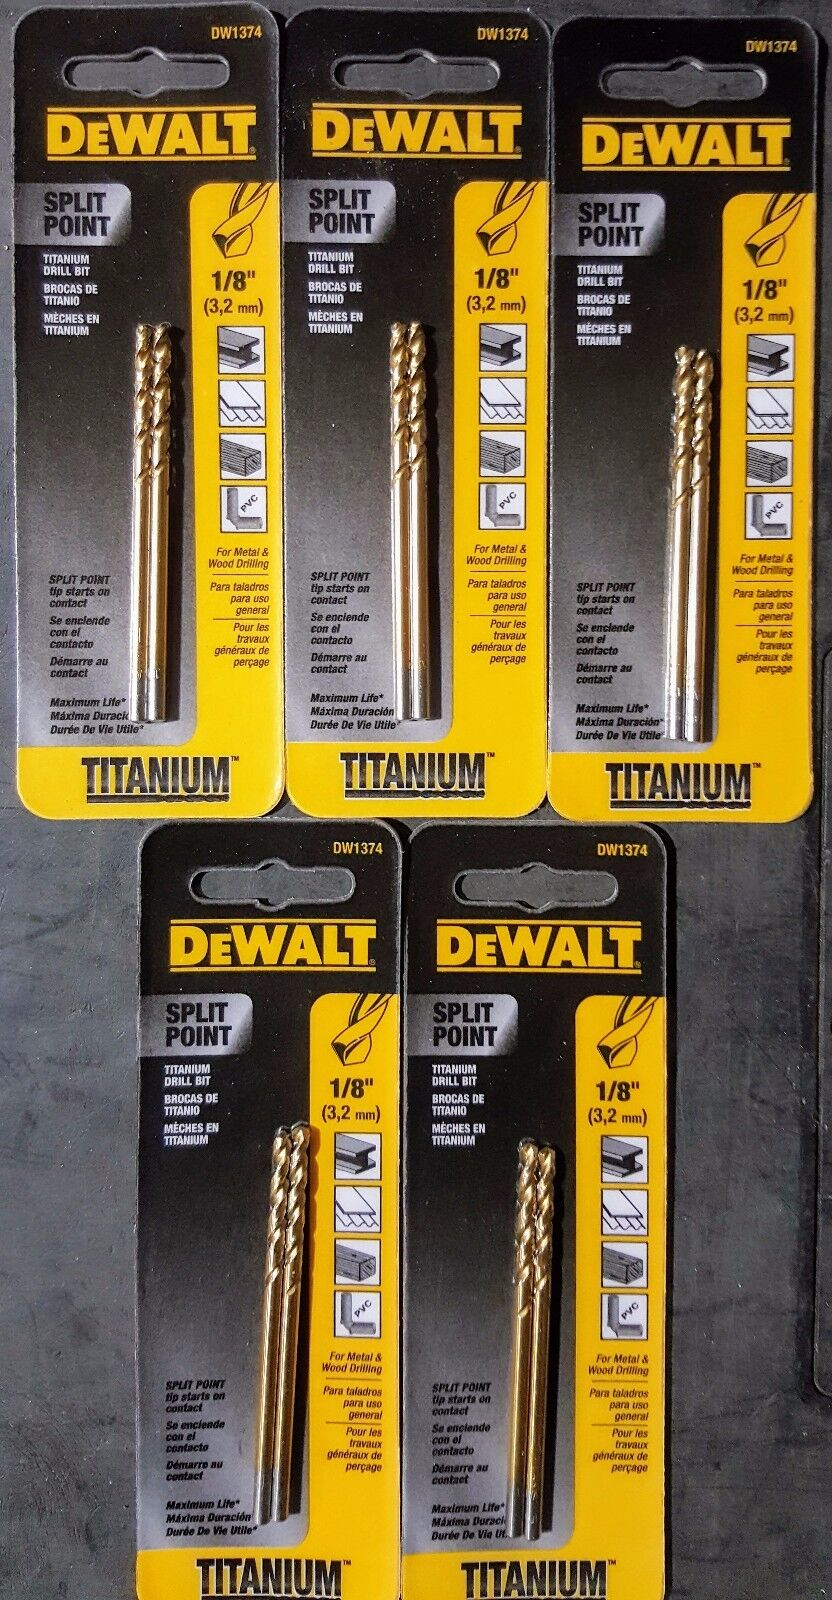 DEWALT 1/8 in. Titanium Split Point Drill Bits 2 Pack